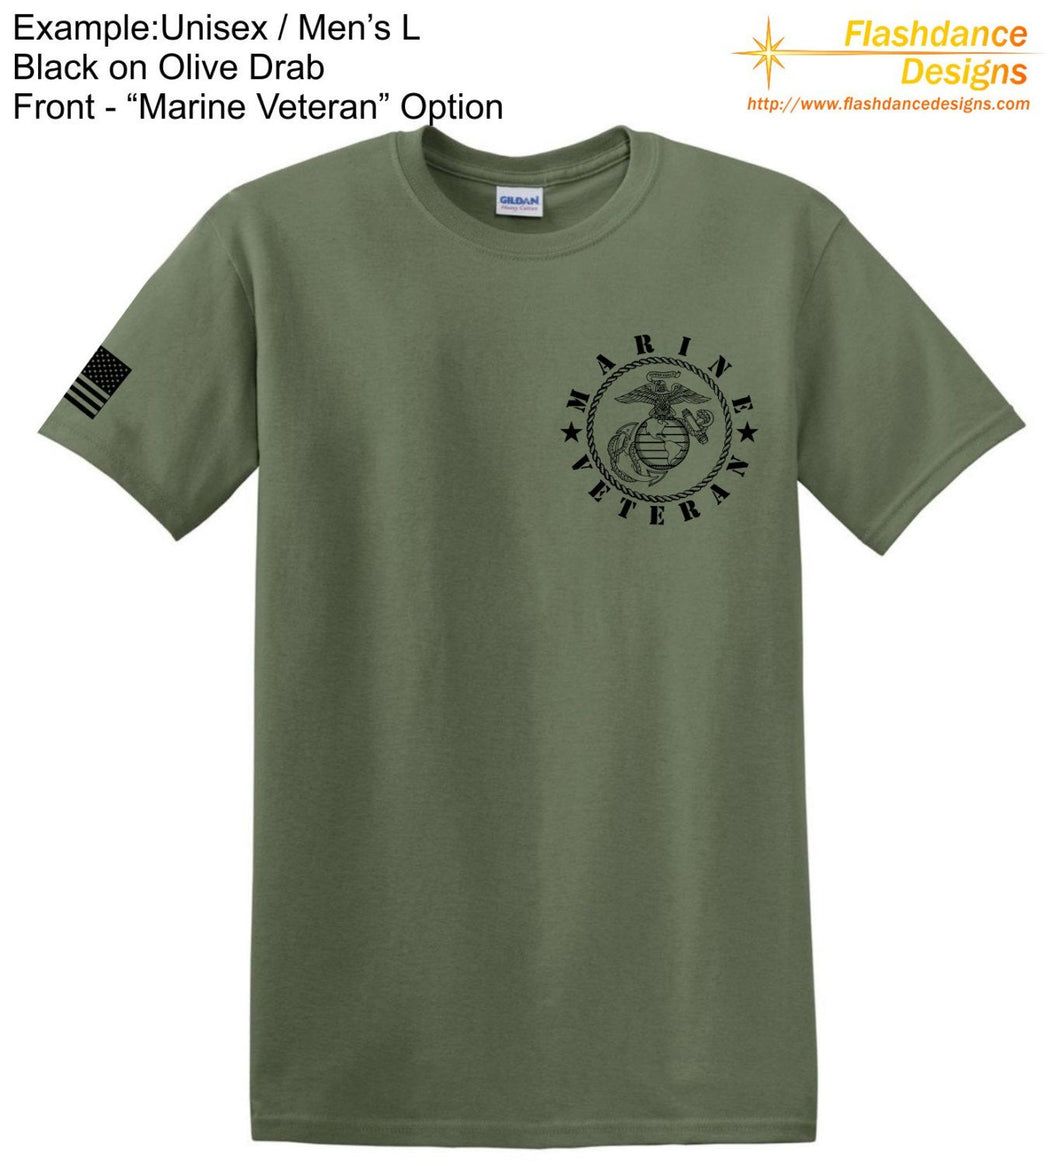 United States Marine Corps (USMC) heavy cotton tee shirt with Eagle Globe and Anchor (EGA) and Marine Veteran on the left chest and an US Flag on the right sleeve.